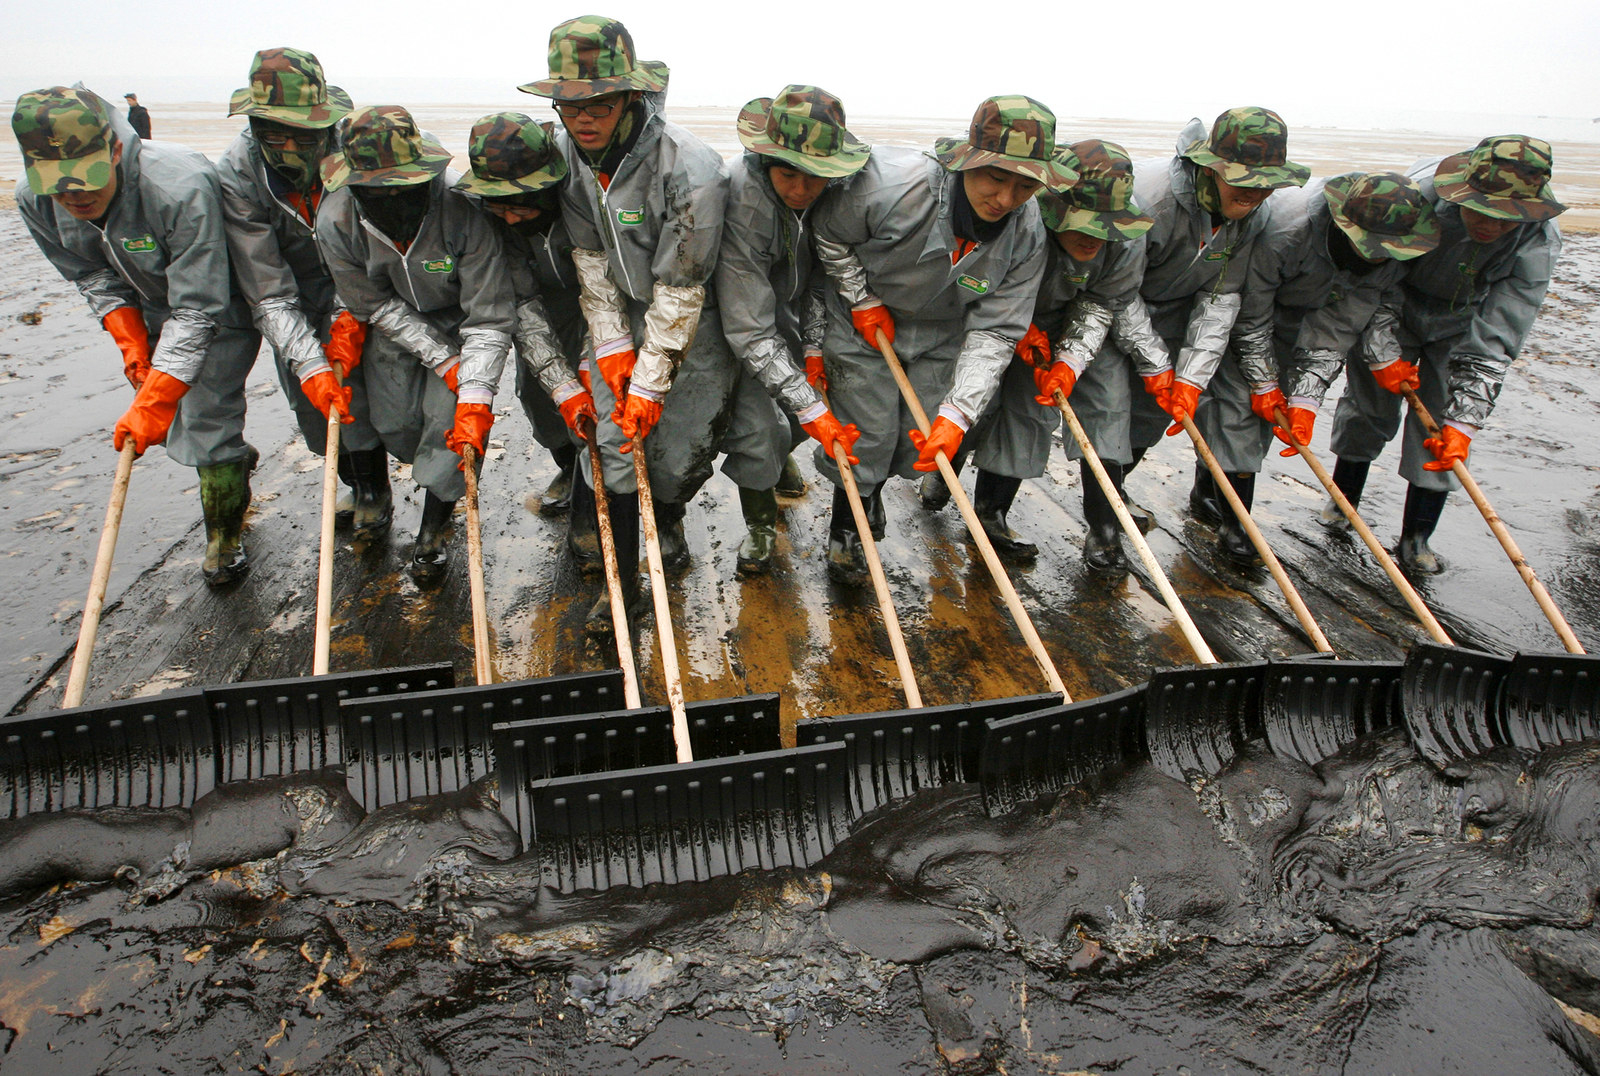 Soldiers from the South Korean army make efforts to remove crude oil spills over Mallipo Beach after after an accident involving an oil tanker on Dec. 10, 2007.